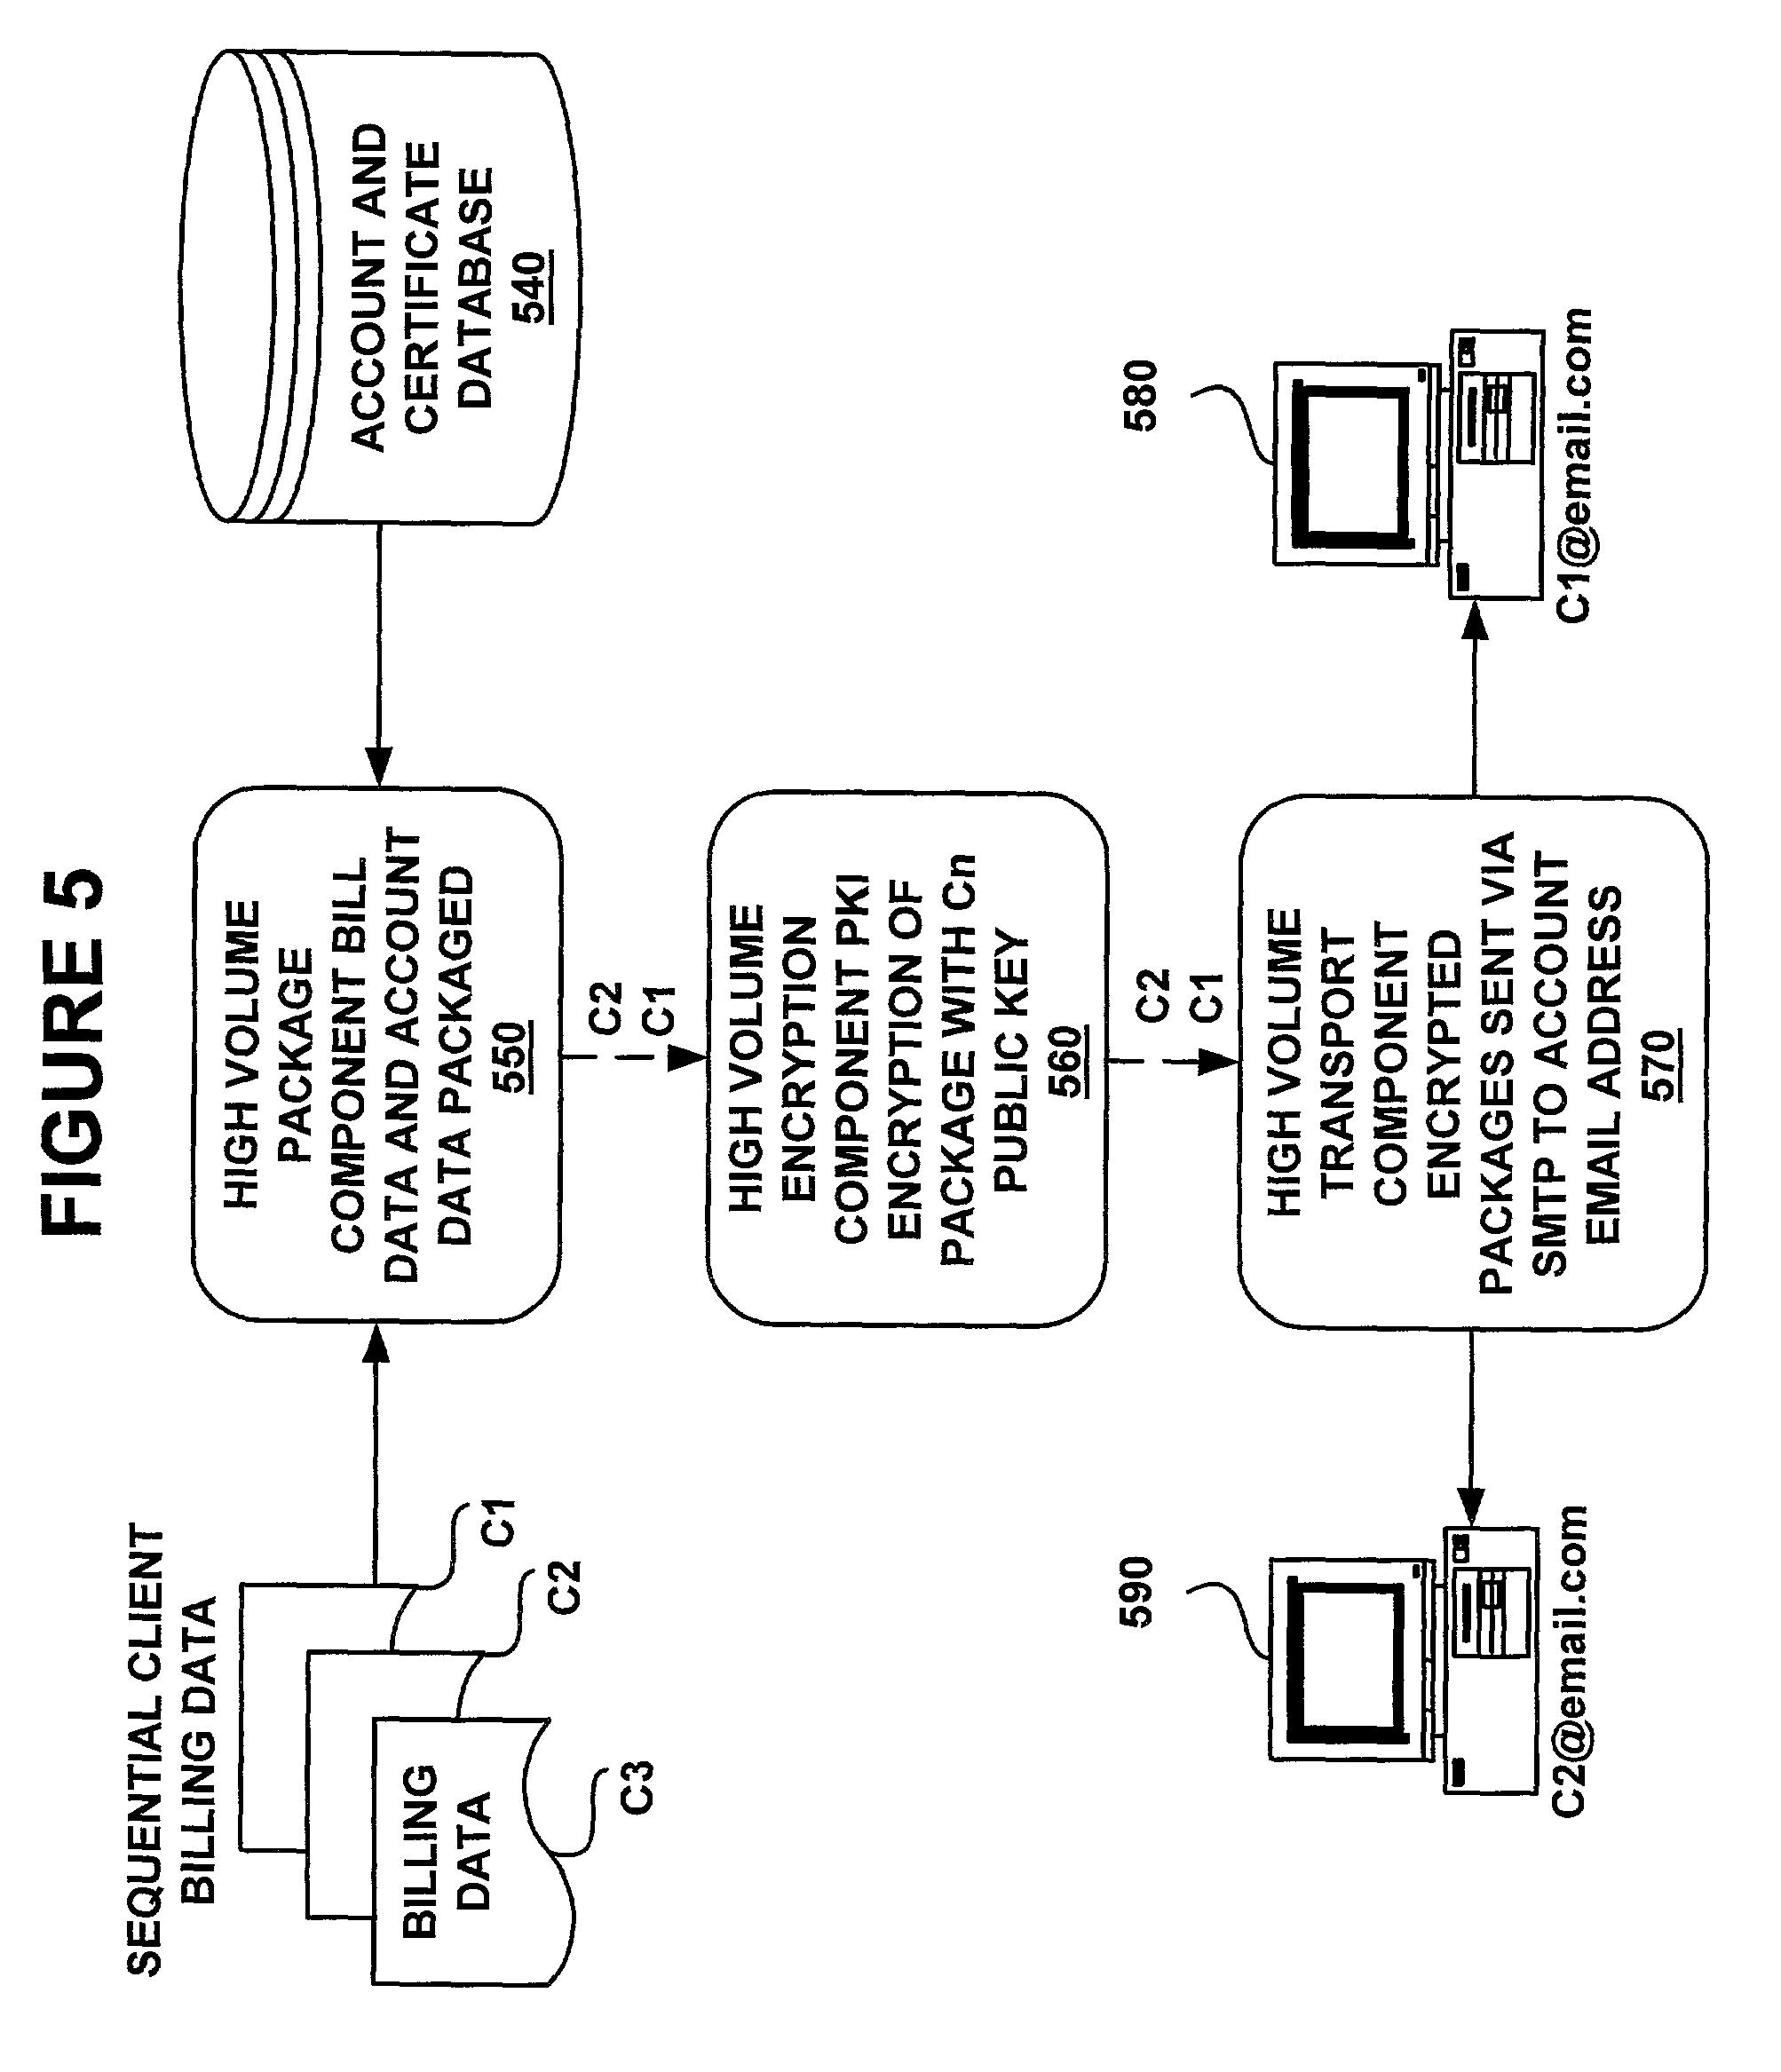 Room Rent Receipt Format Pdf Word Patent Us  Secured Content Delivery System And Method  Af Form 1297 Temporary Issue Receipt with Word Document Invoice Template Pdf Patent Drawing Deposit Receipt Template Pdf